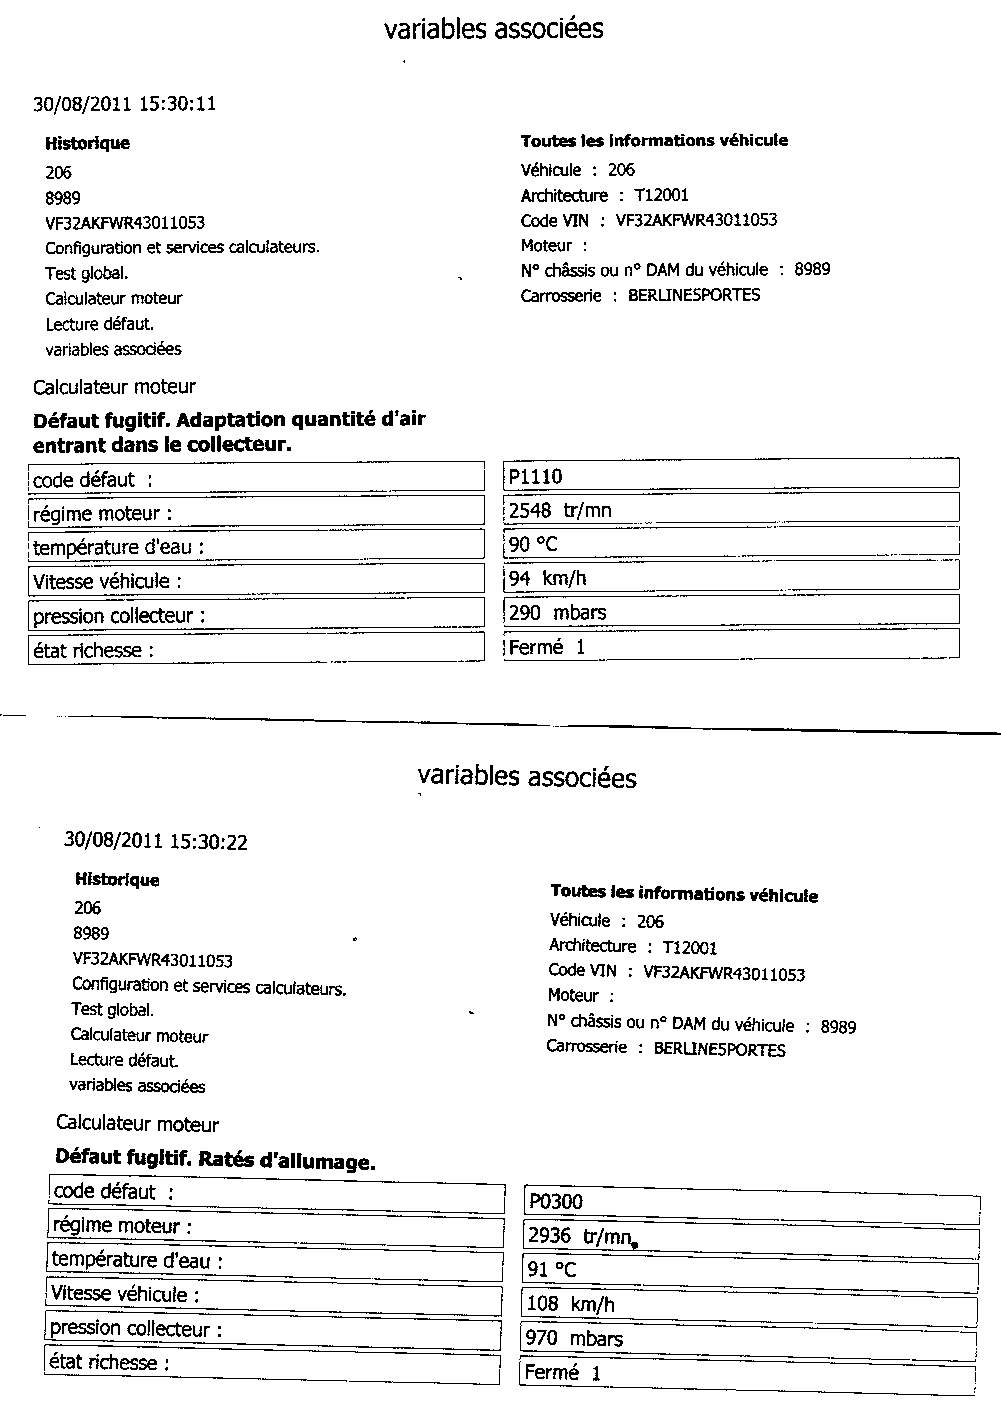 Bmw fault symbols image collections symbols and meanings peugeot 206 dashboard symbols choice image symbols and meanings peugeot 206 dashboard symbols images symbols and biocorpaavc Images